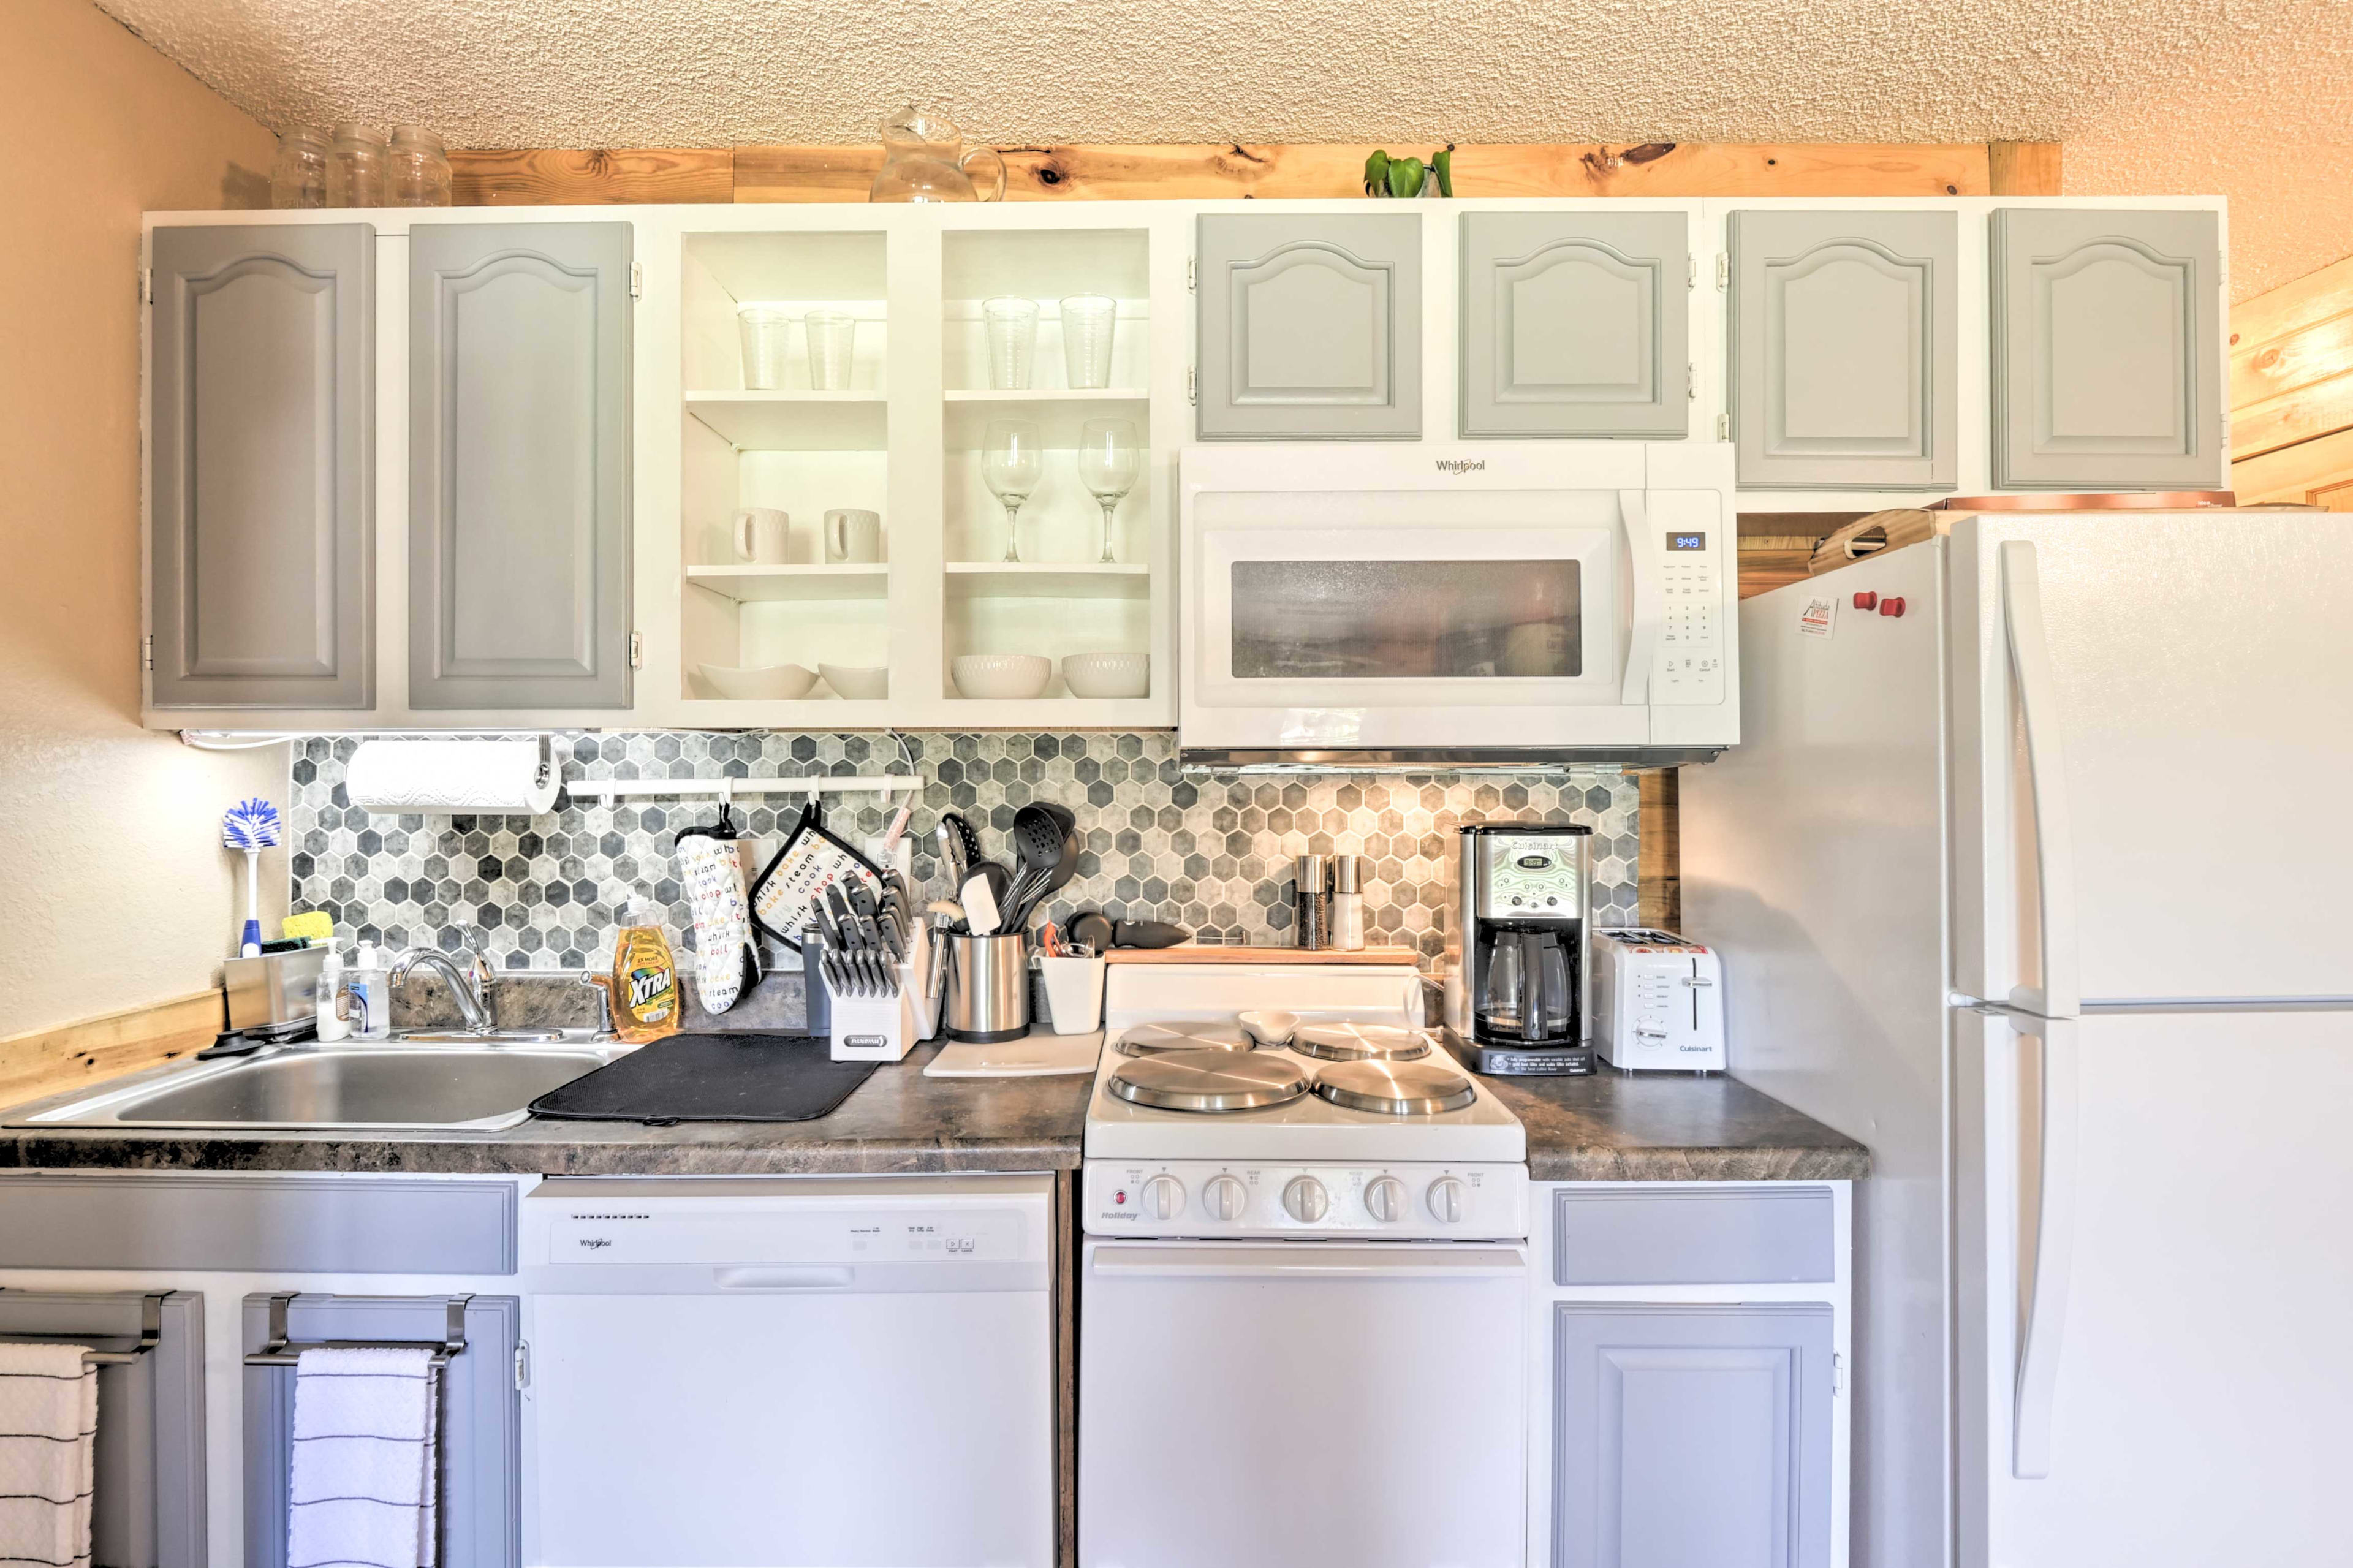 The fully equipped kitchen allows you to skip a dinner tab.